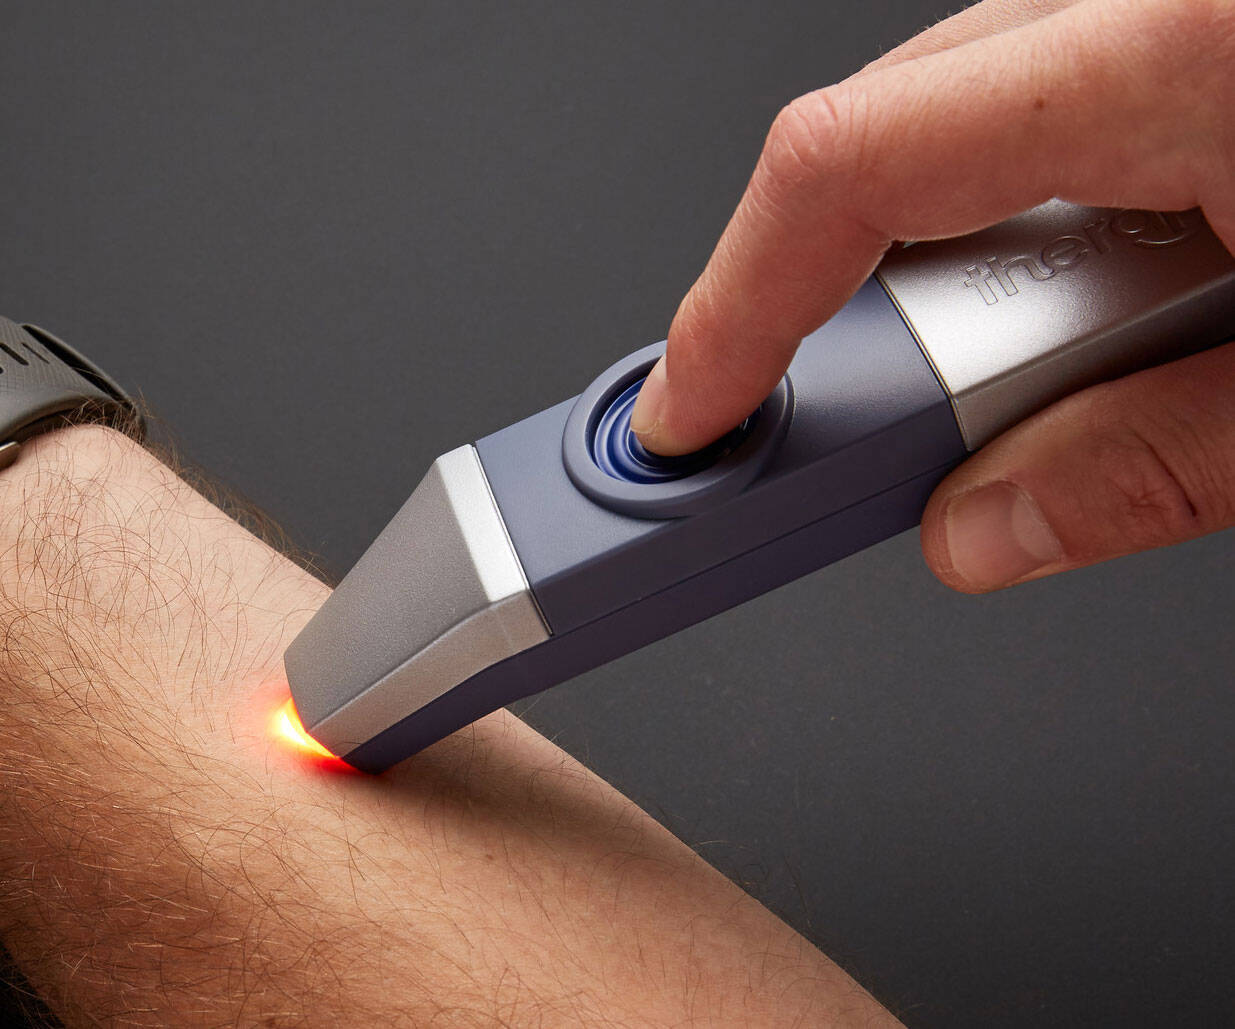 Insect Bite Itch & Pain Relief Device - http://coolthings.us